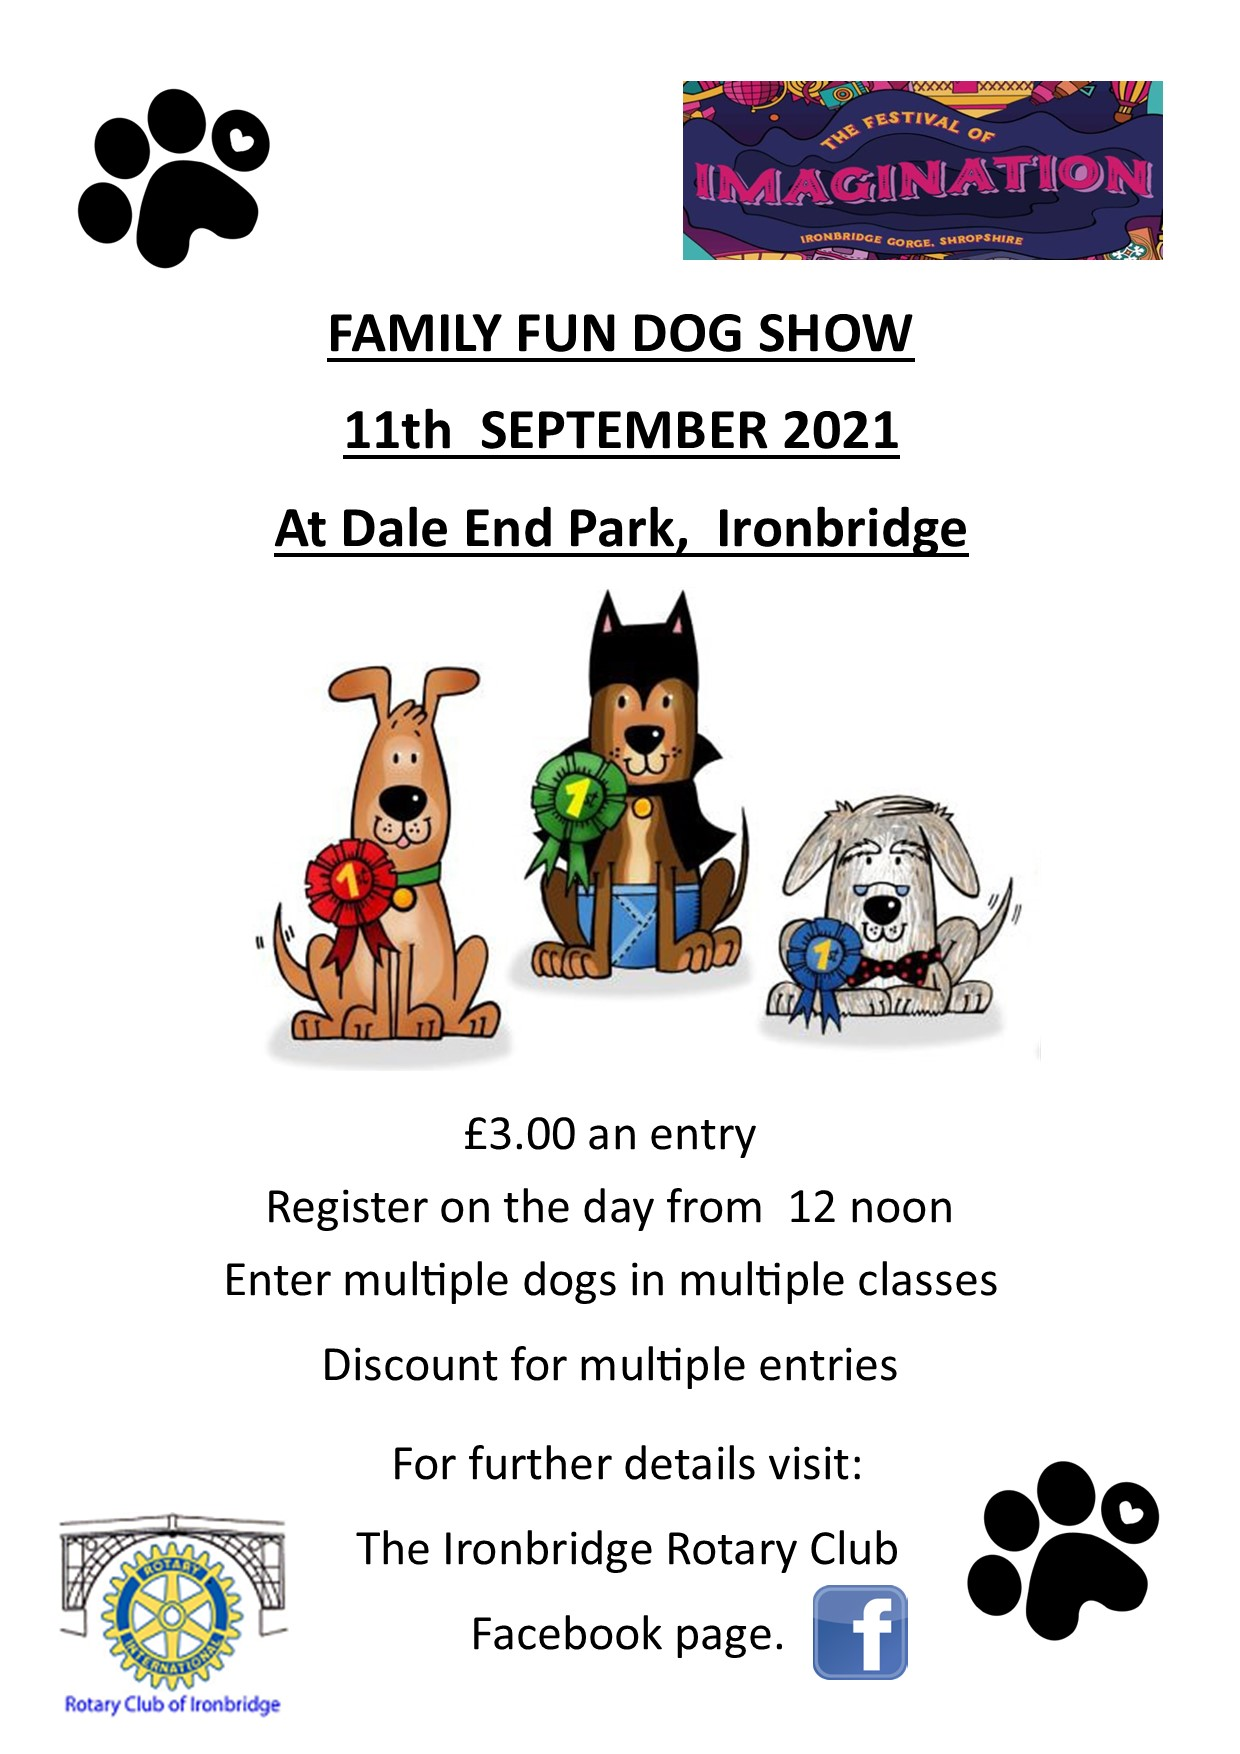 OUR DOG SHOW IS BACK!